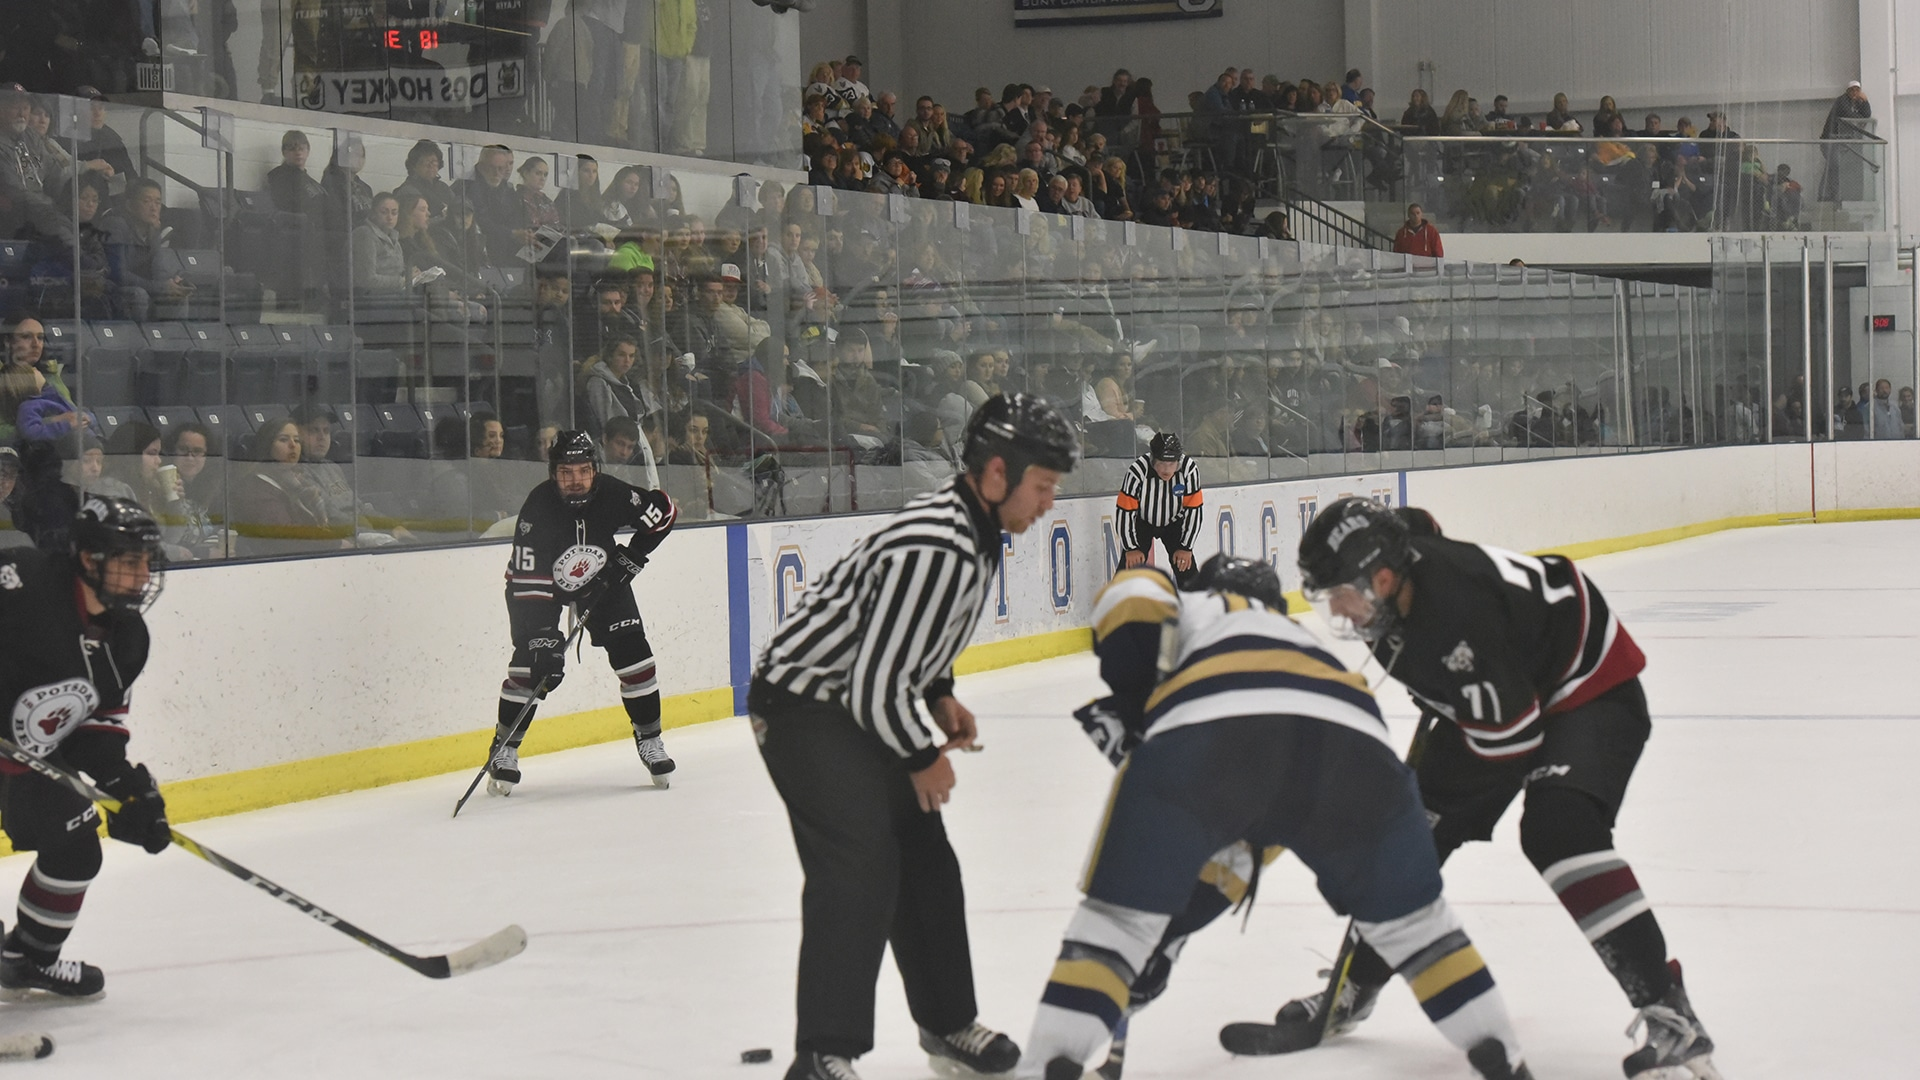 A hockey referee drops the puck during a faceoff at the Roos House arena at the State University of New York at Canton